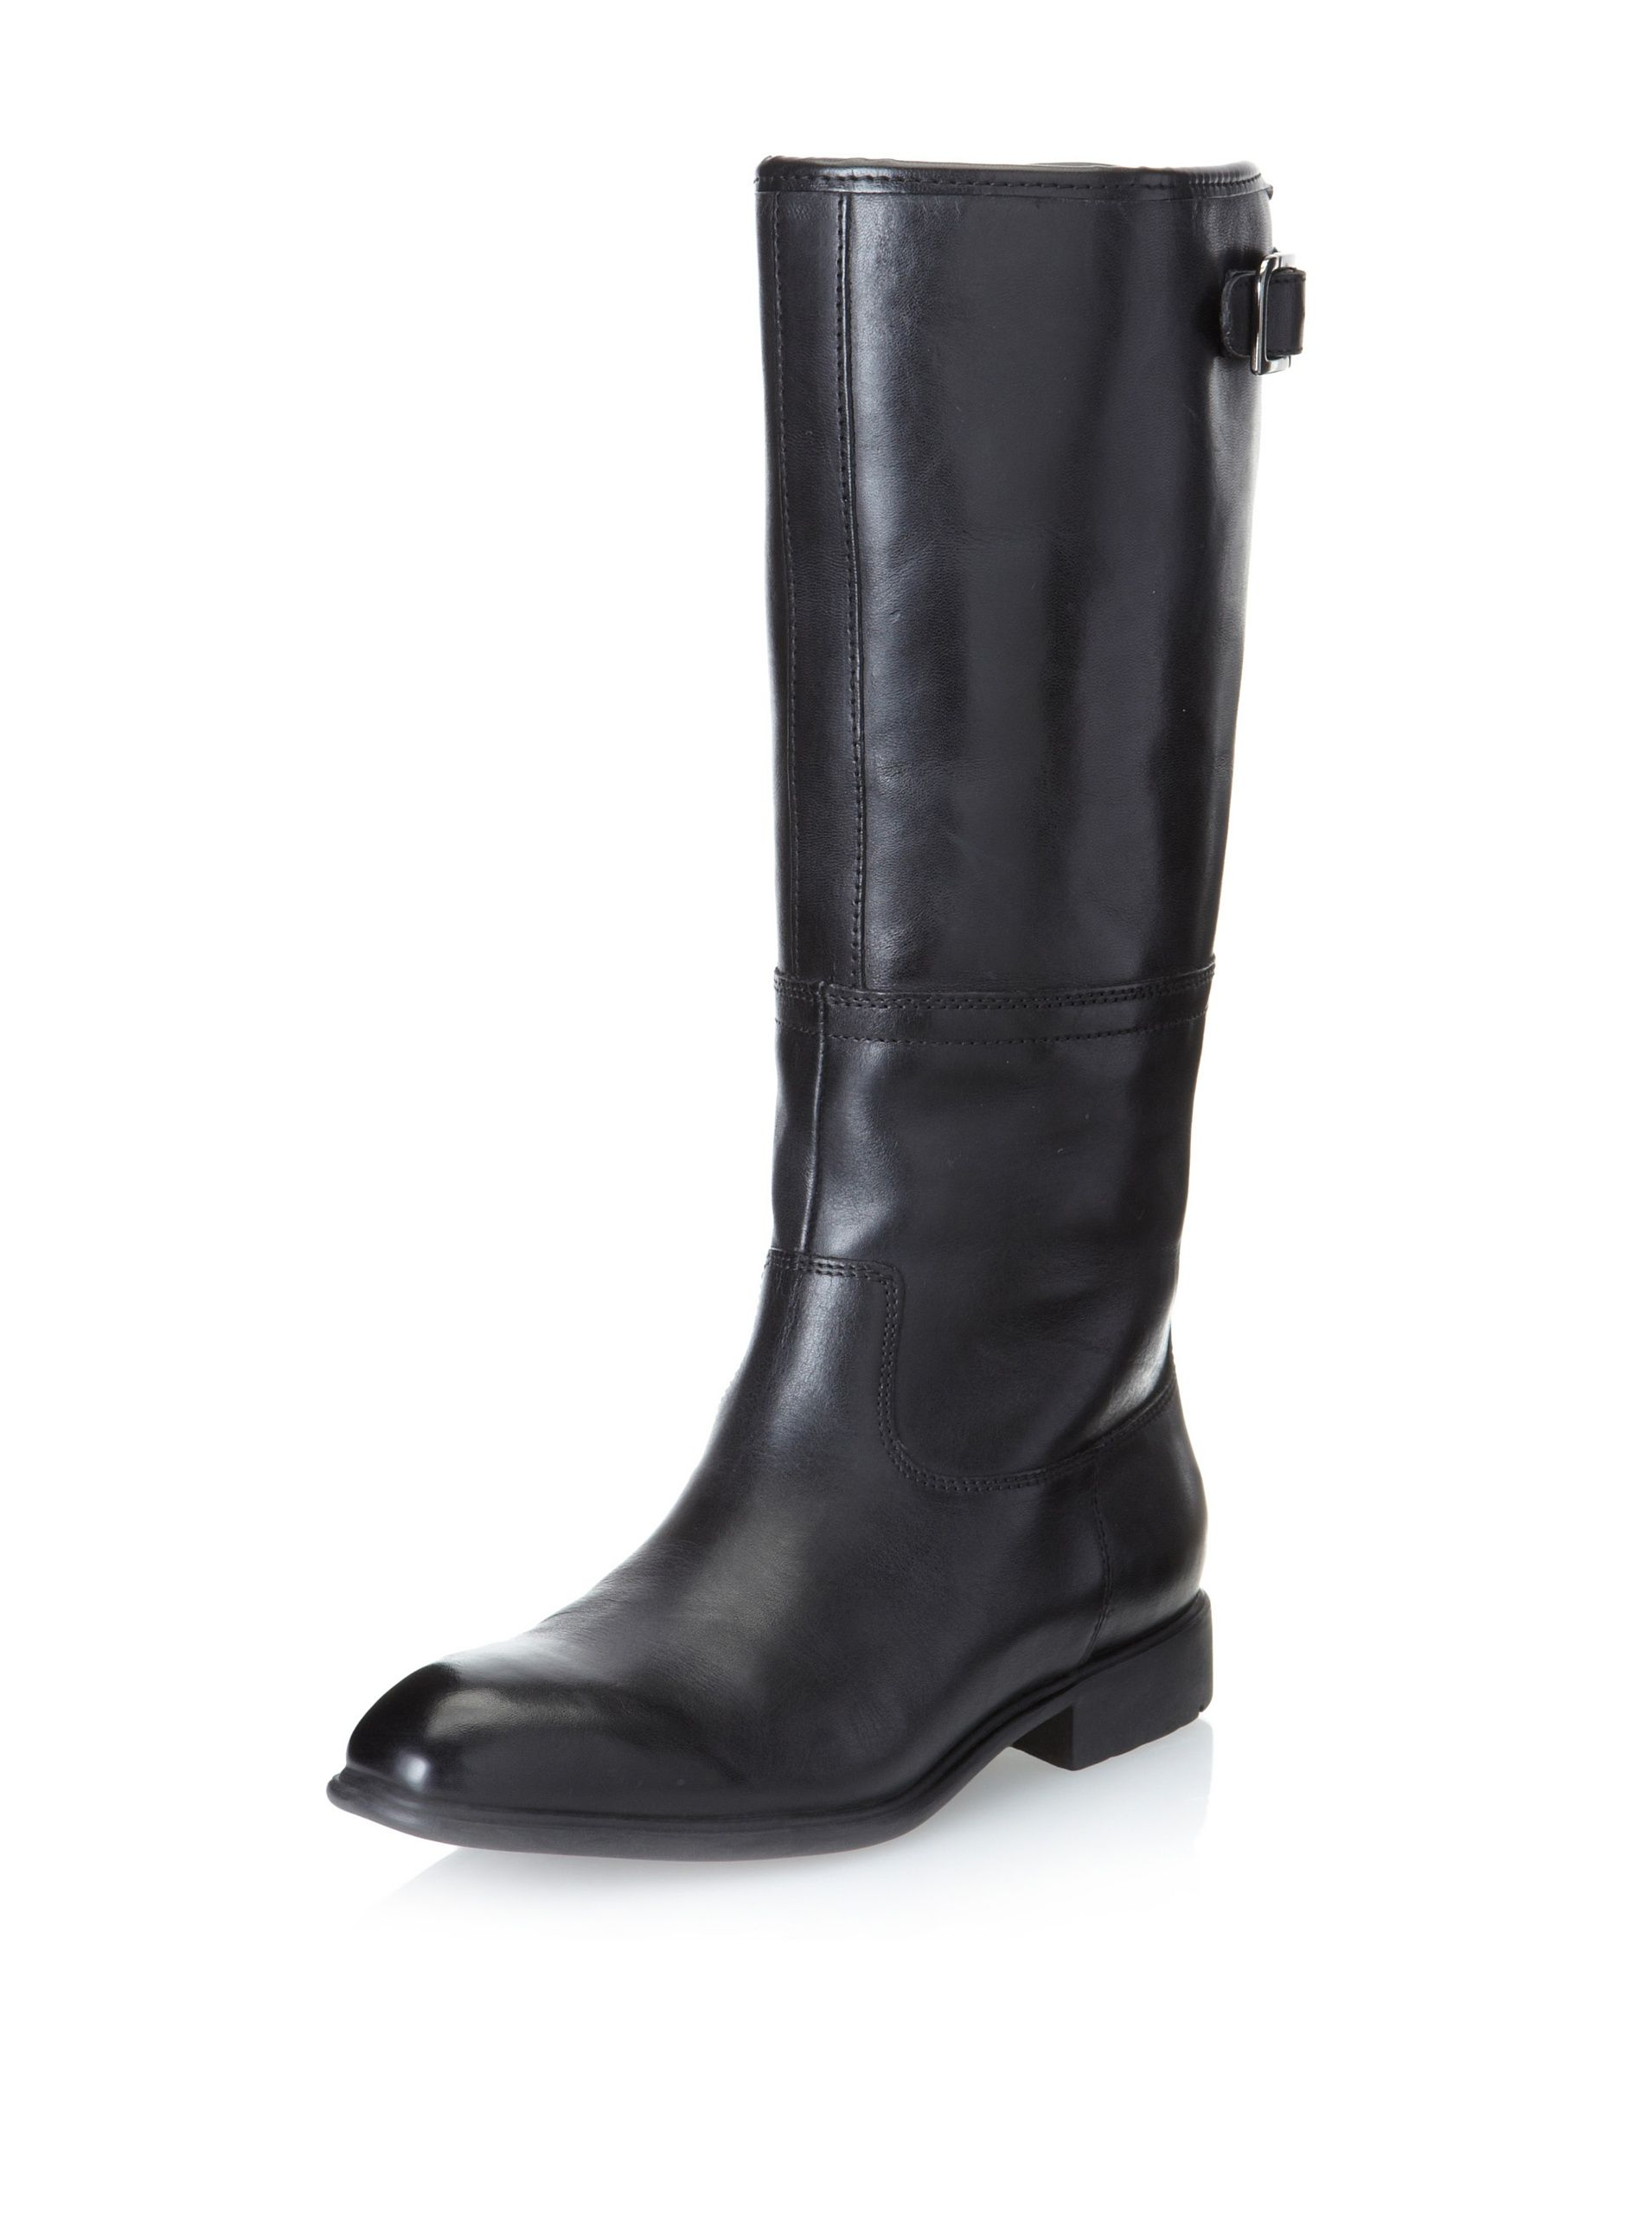 Rockport Women's Lola Pull-On Boot (Black) Classic riding style in smooth  leather